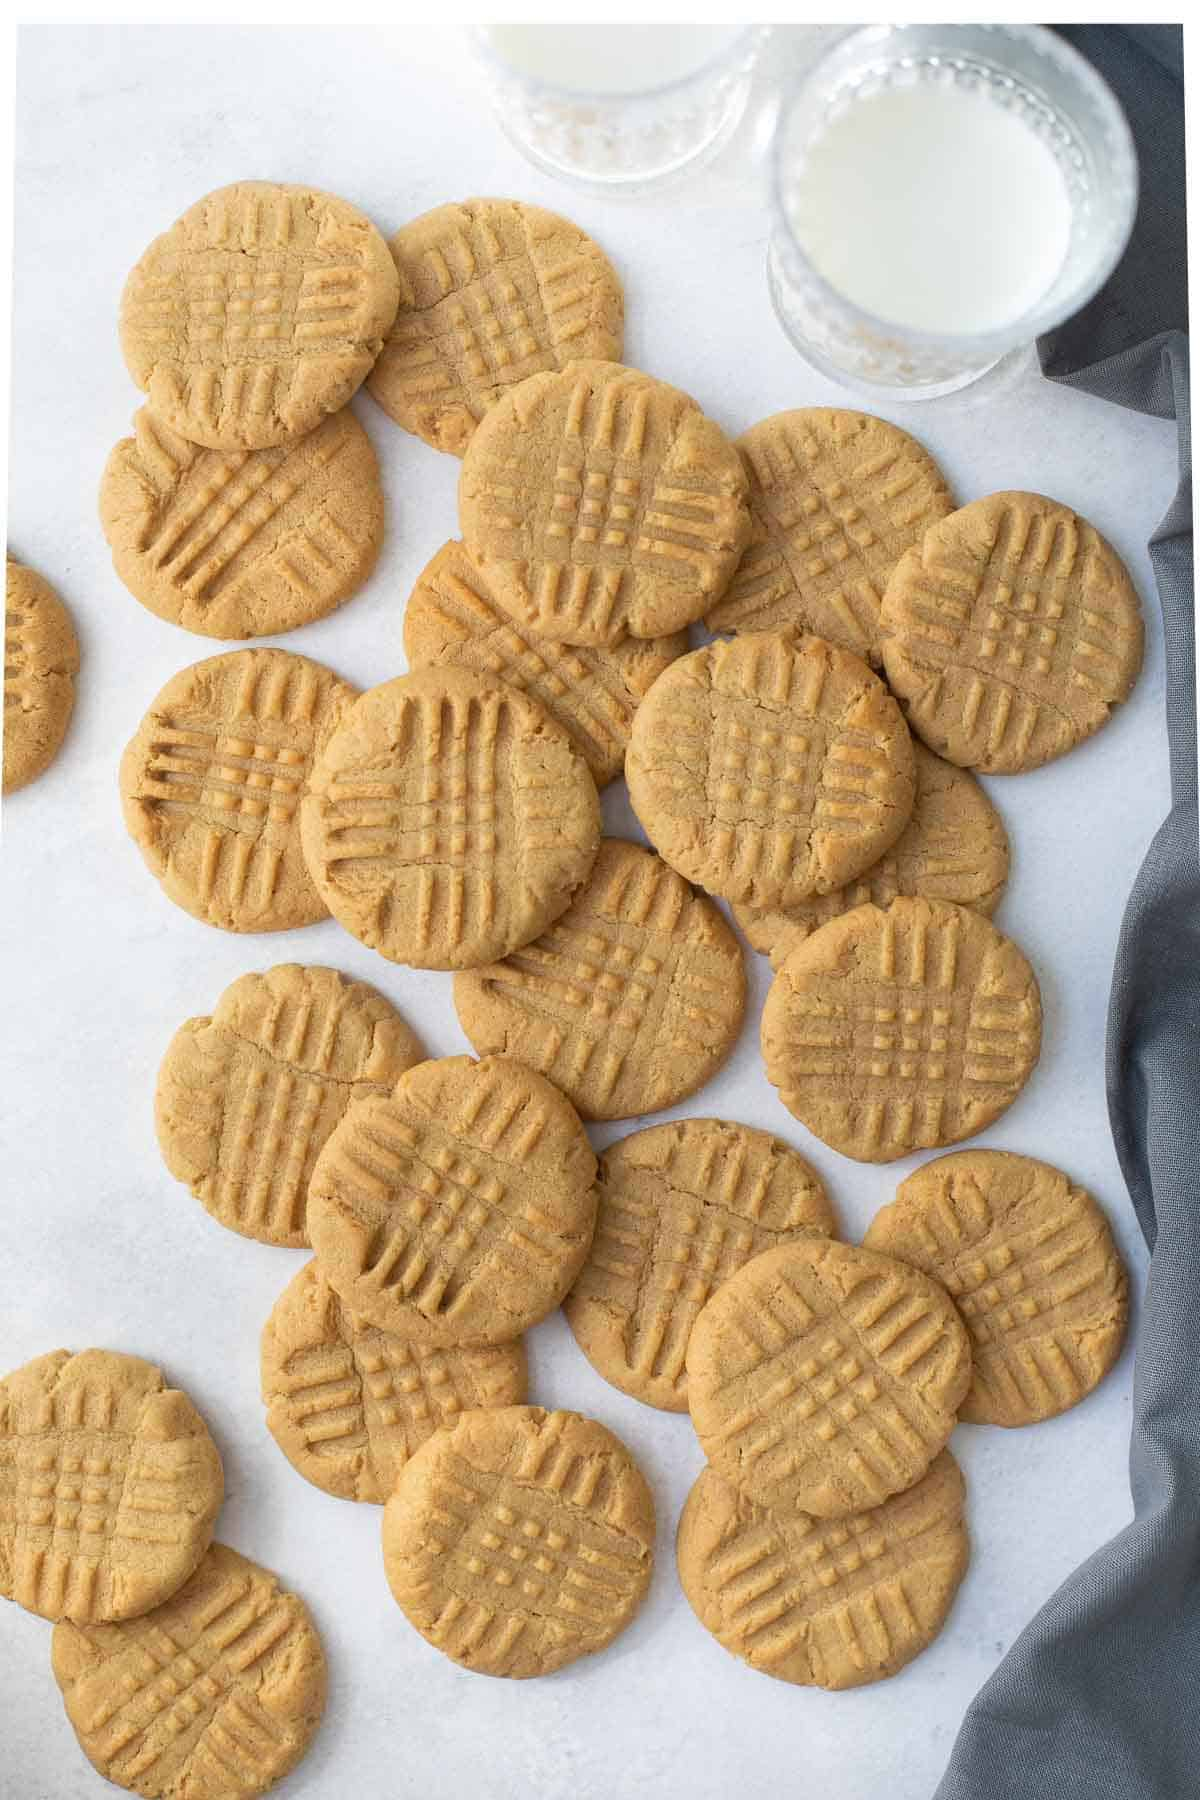 overhead shot of all the cookies on marble background with gray napkin and glass of milk